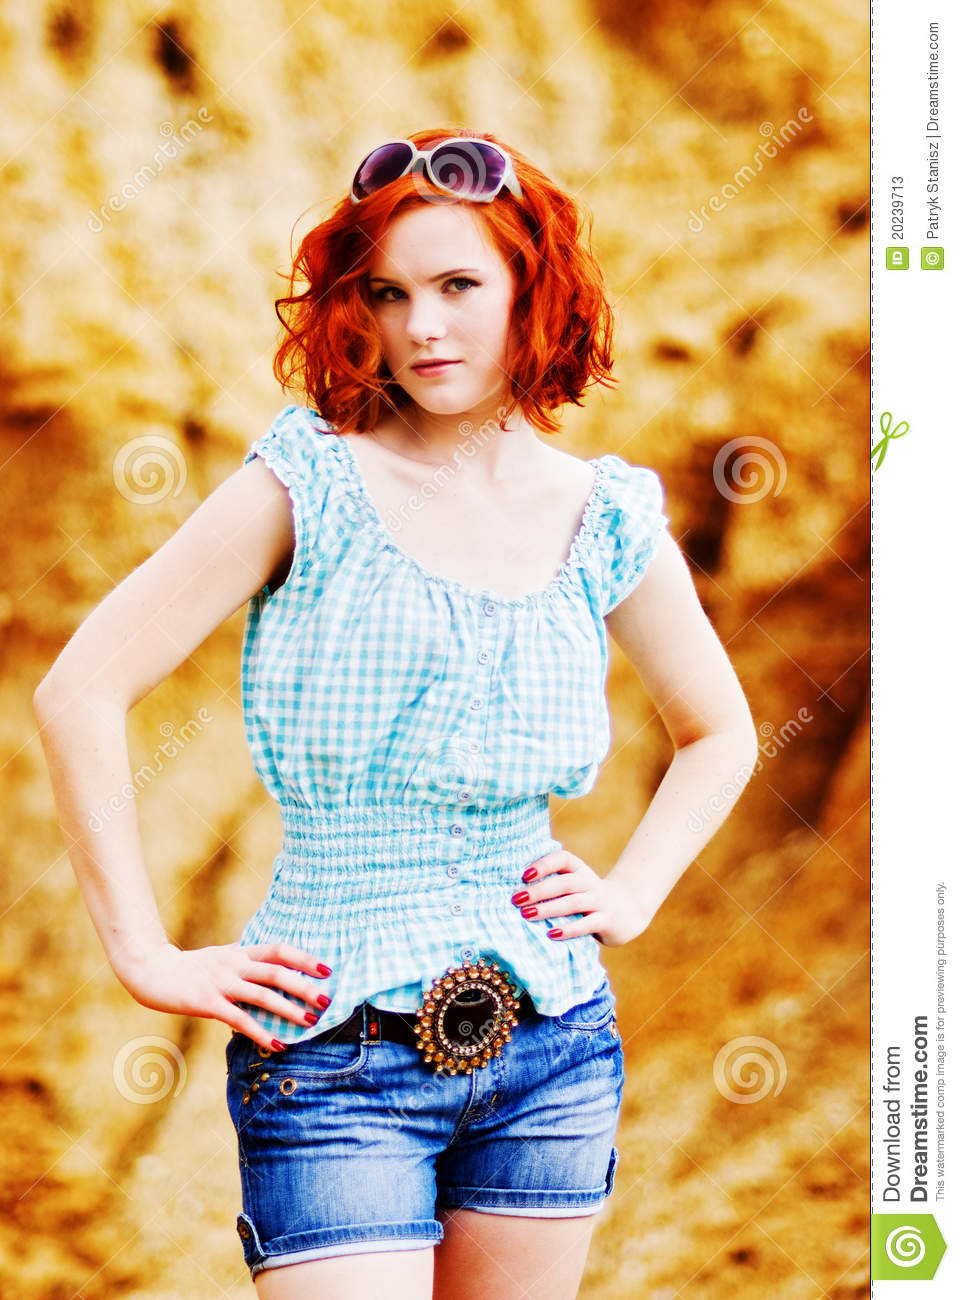 Pity, Young girl with red hair information true